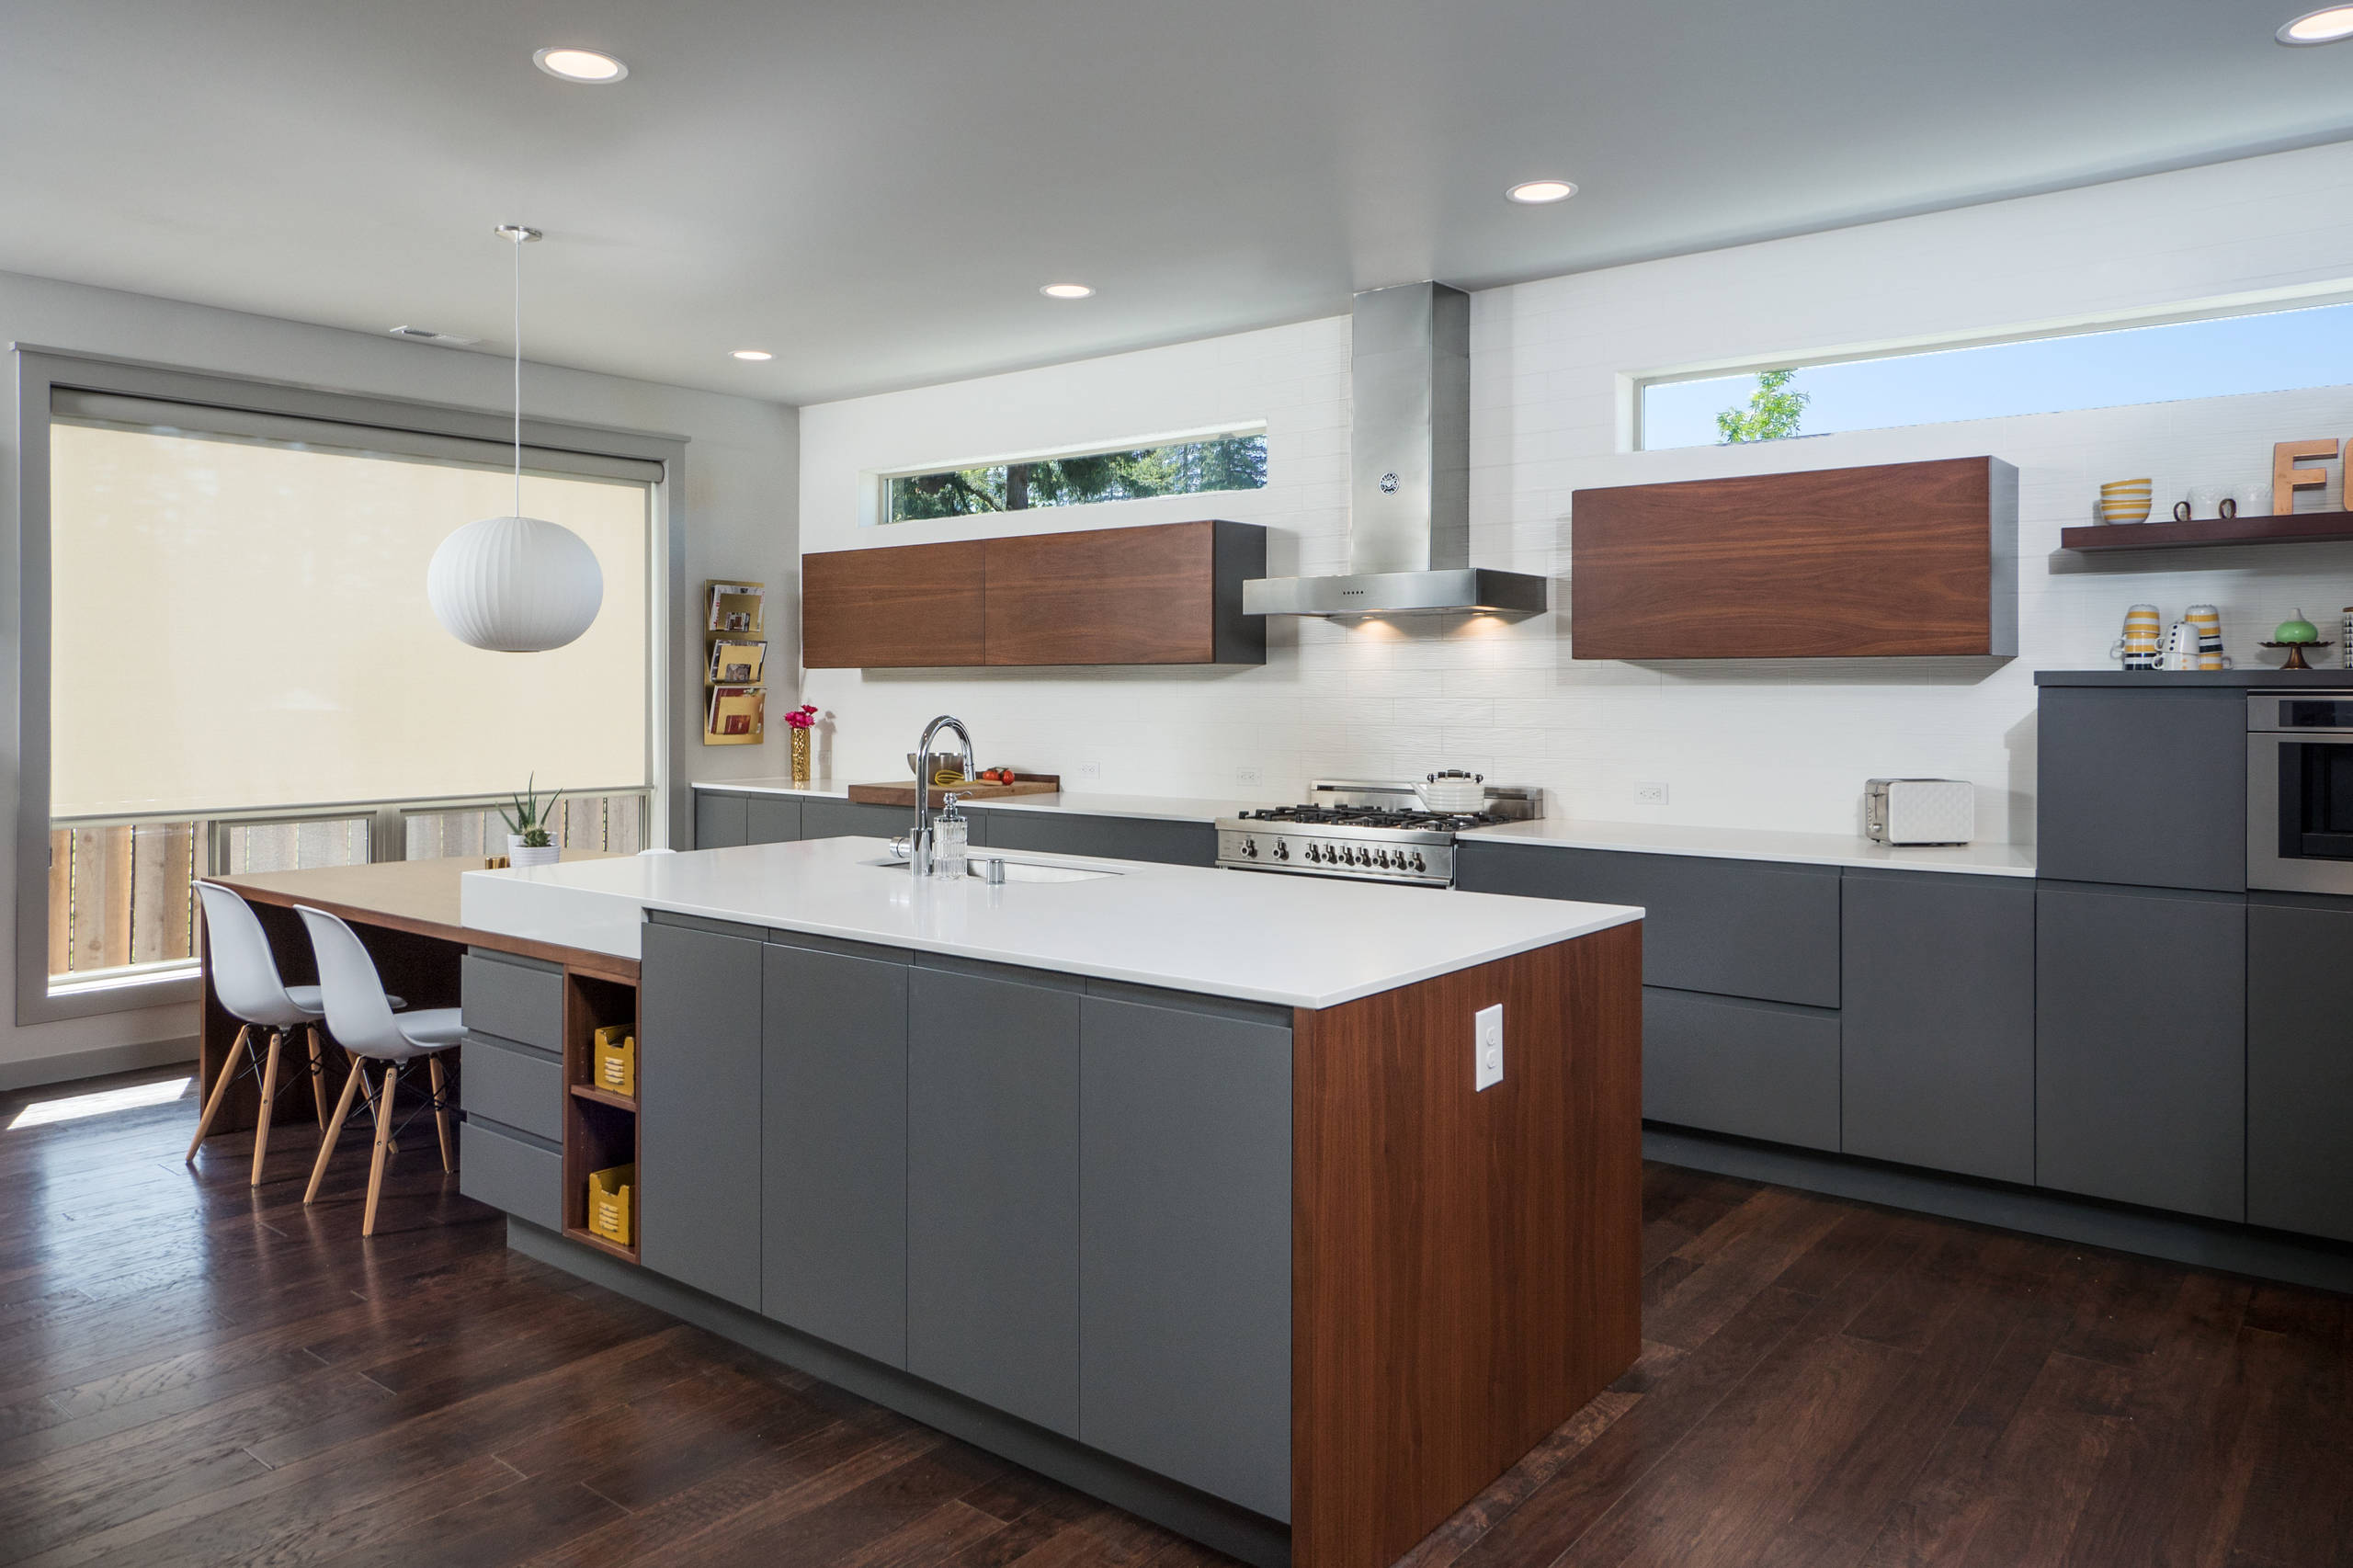 Charmant 18 Hot Kitchen Renovation Tips U0026 Designs That Will Motivate You To Become A  Great Cook